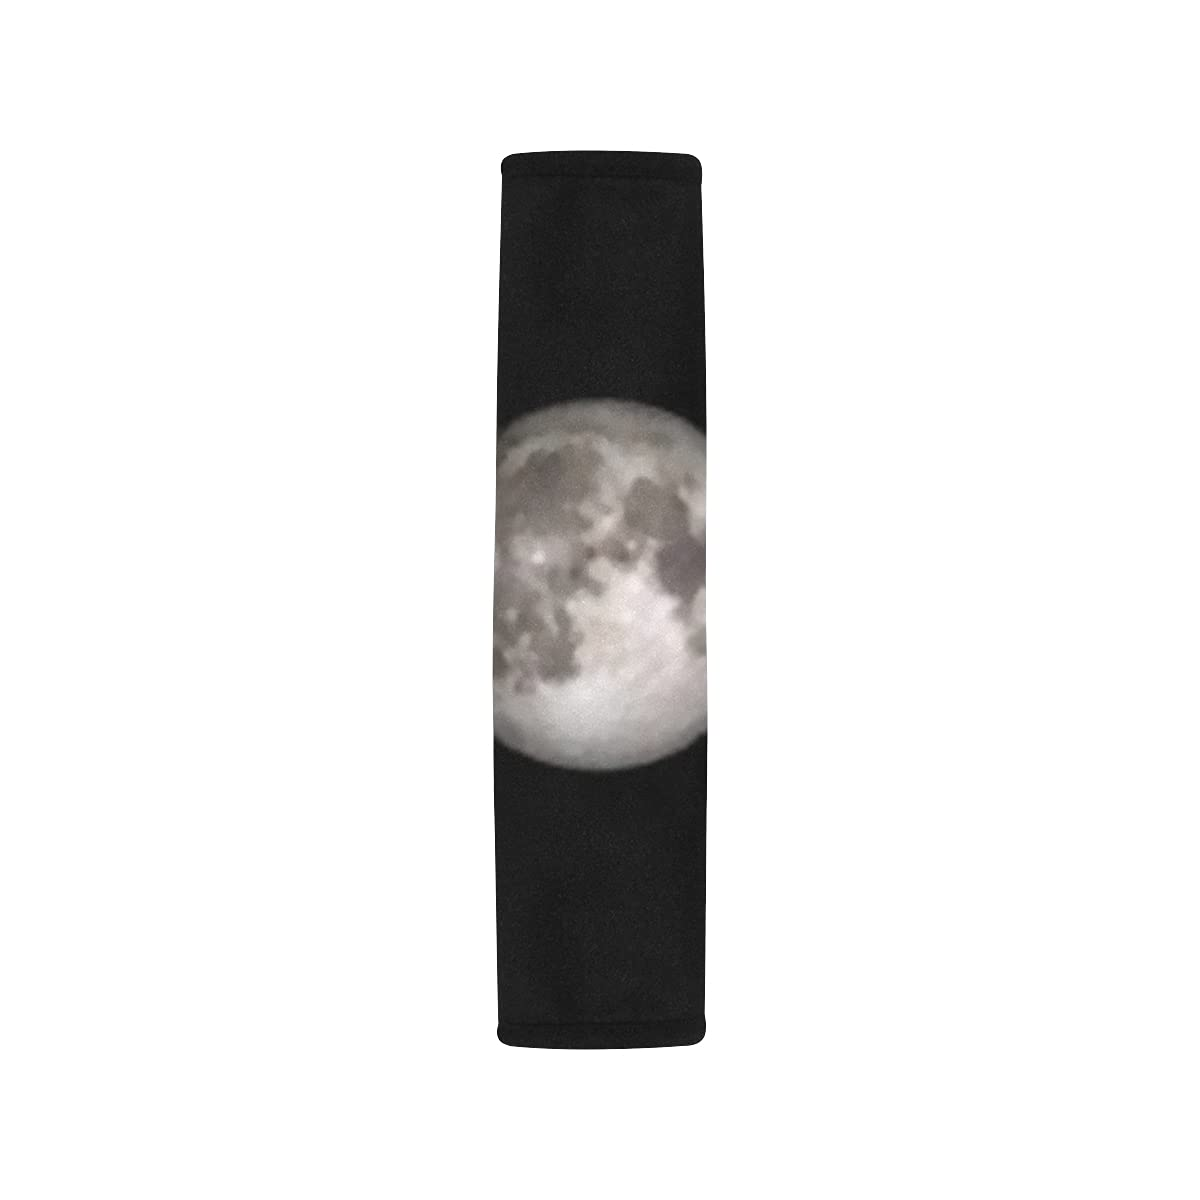 2pcs Car Seat Belt Cover Moon Provide Phases Challenge the lowest price This Image Virginia Beach Mall Elements